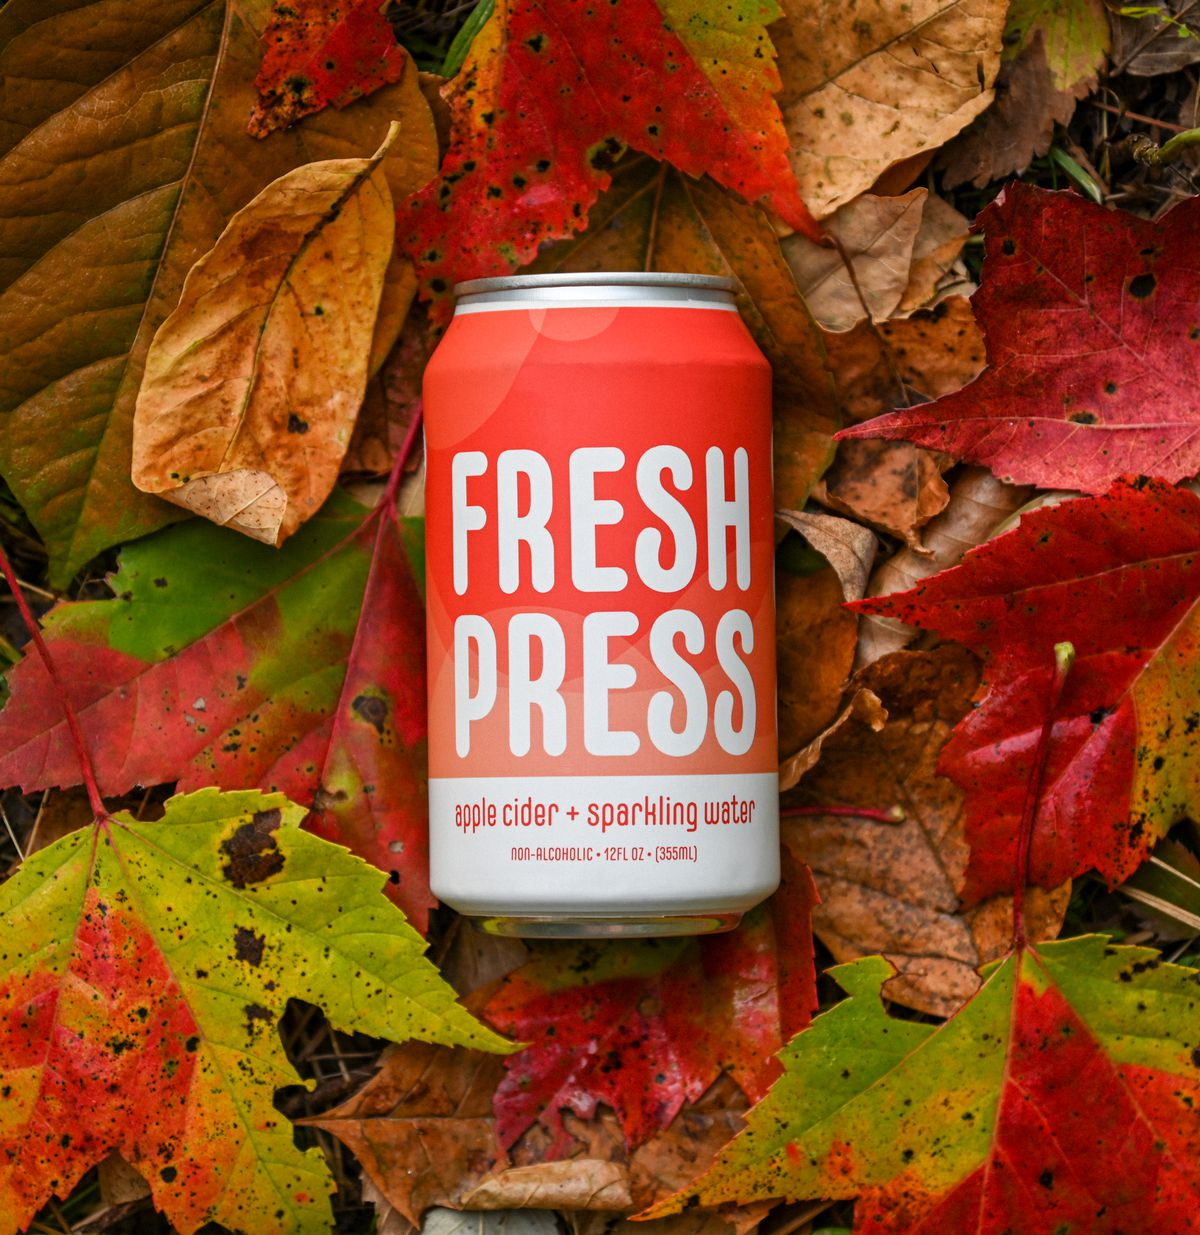 A can of Fresh Press Apple Cider + Sparkling Water from Stowe Cider in Vermont. The cider can lies on top of fallen leaves.